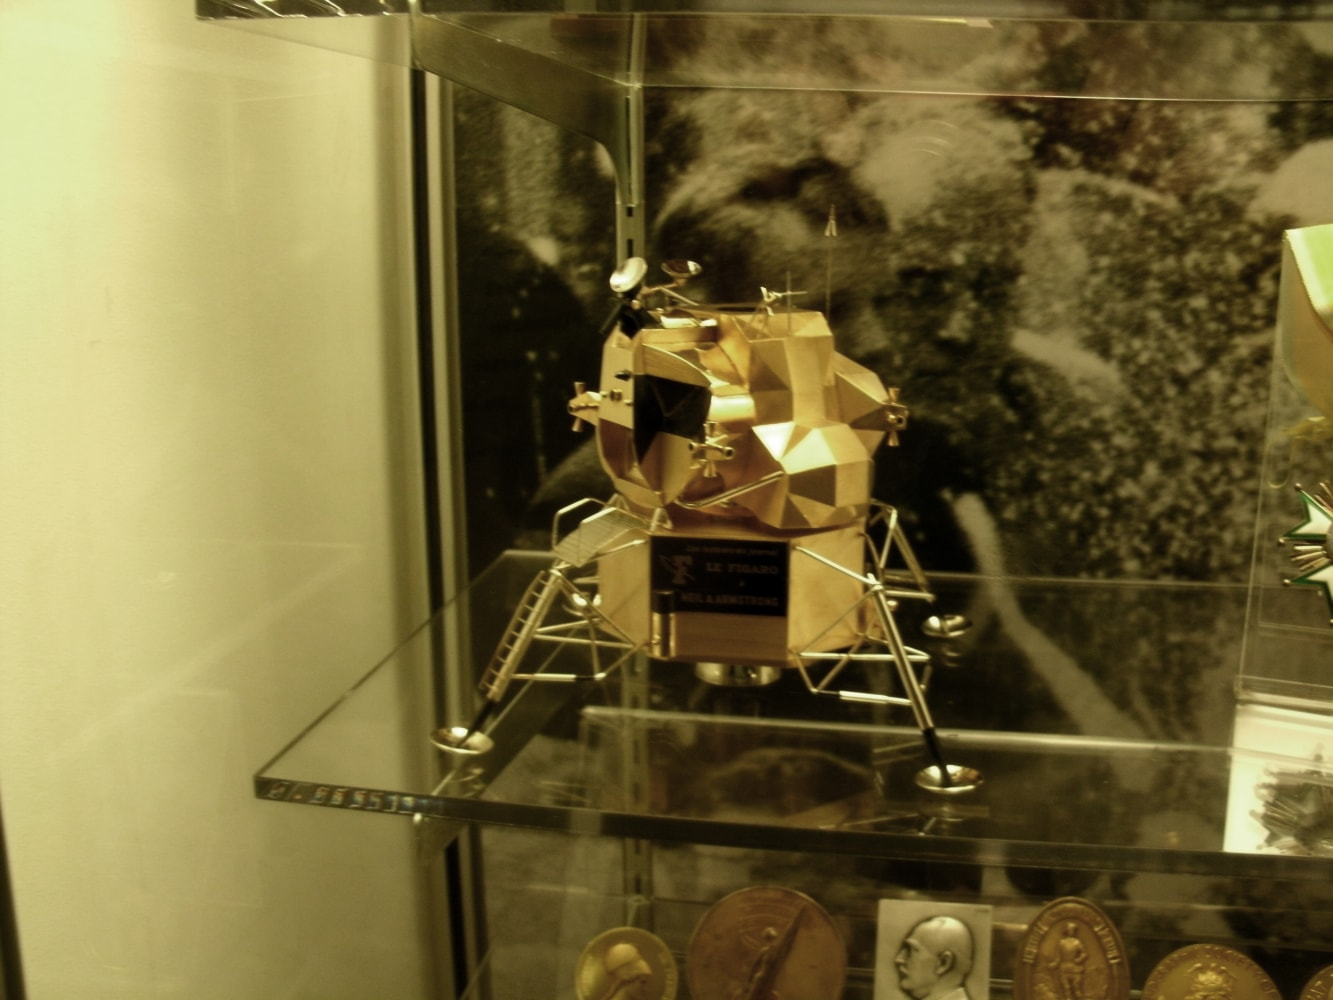 Solid Gold Replica of Lunar Module Stolen From Neil Armstrong Museum